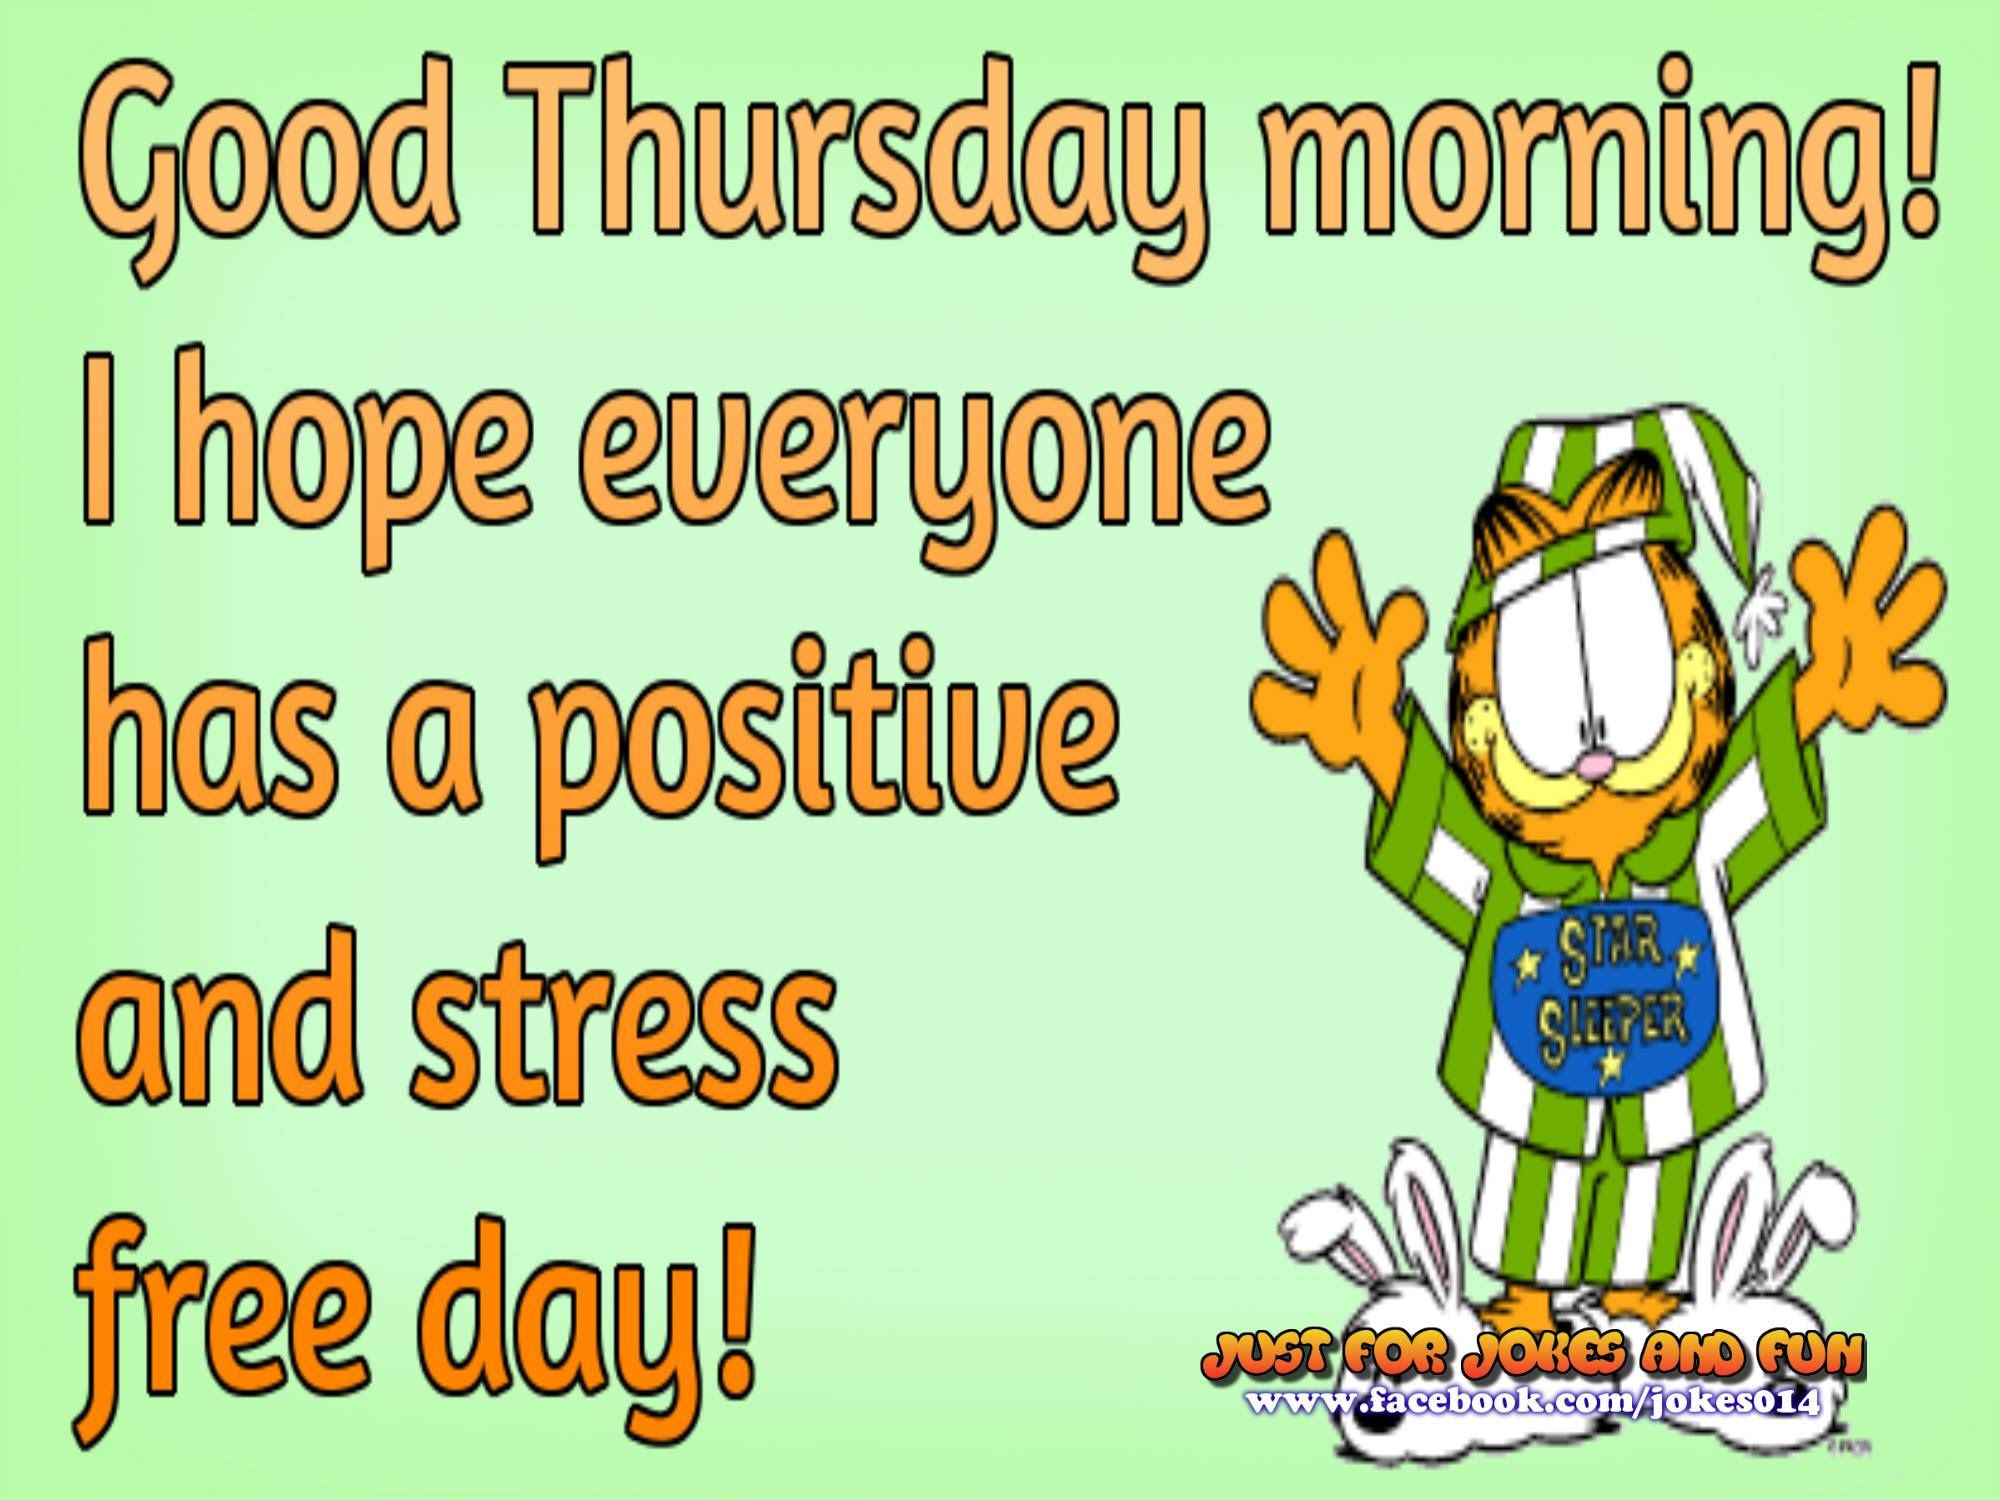 Good Thursday Morning Pictures Photos And Images For Facebook